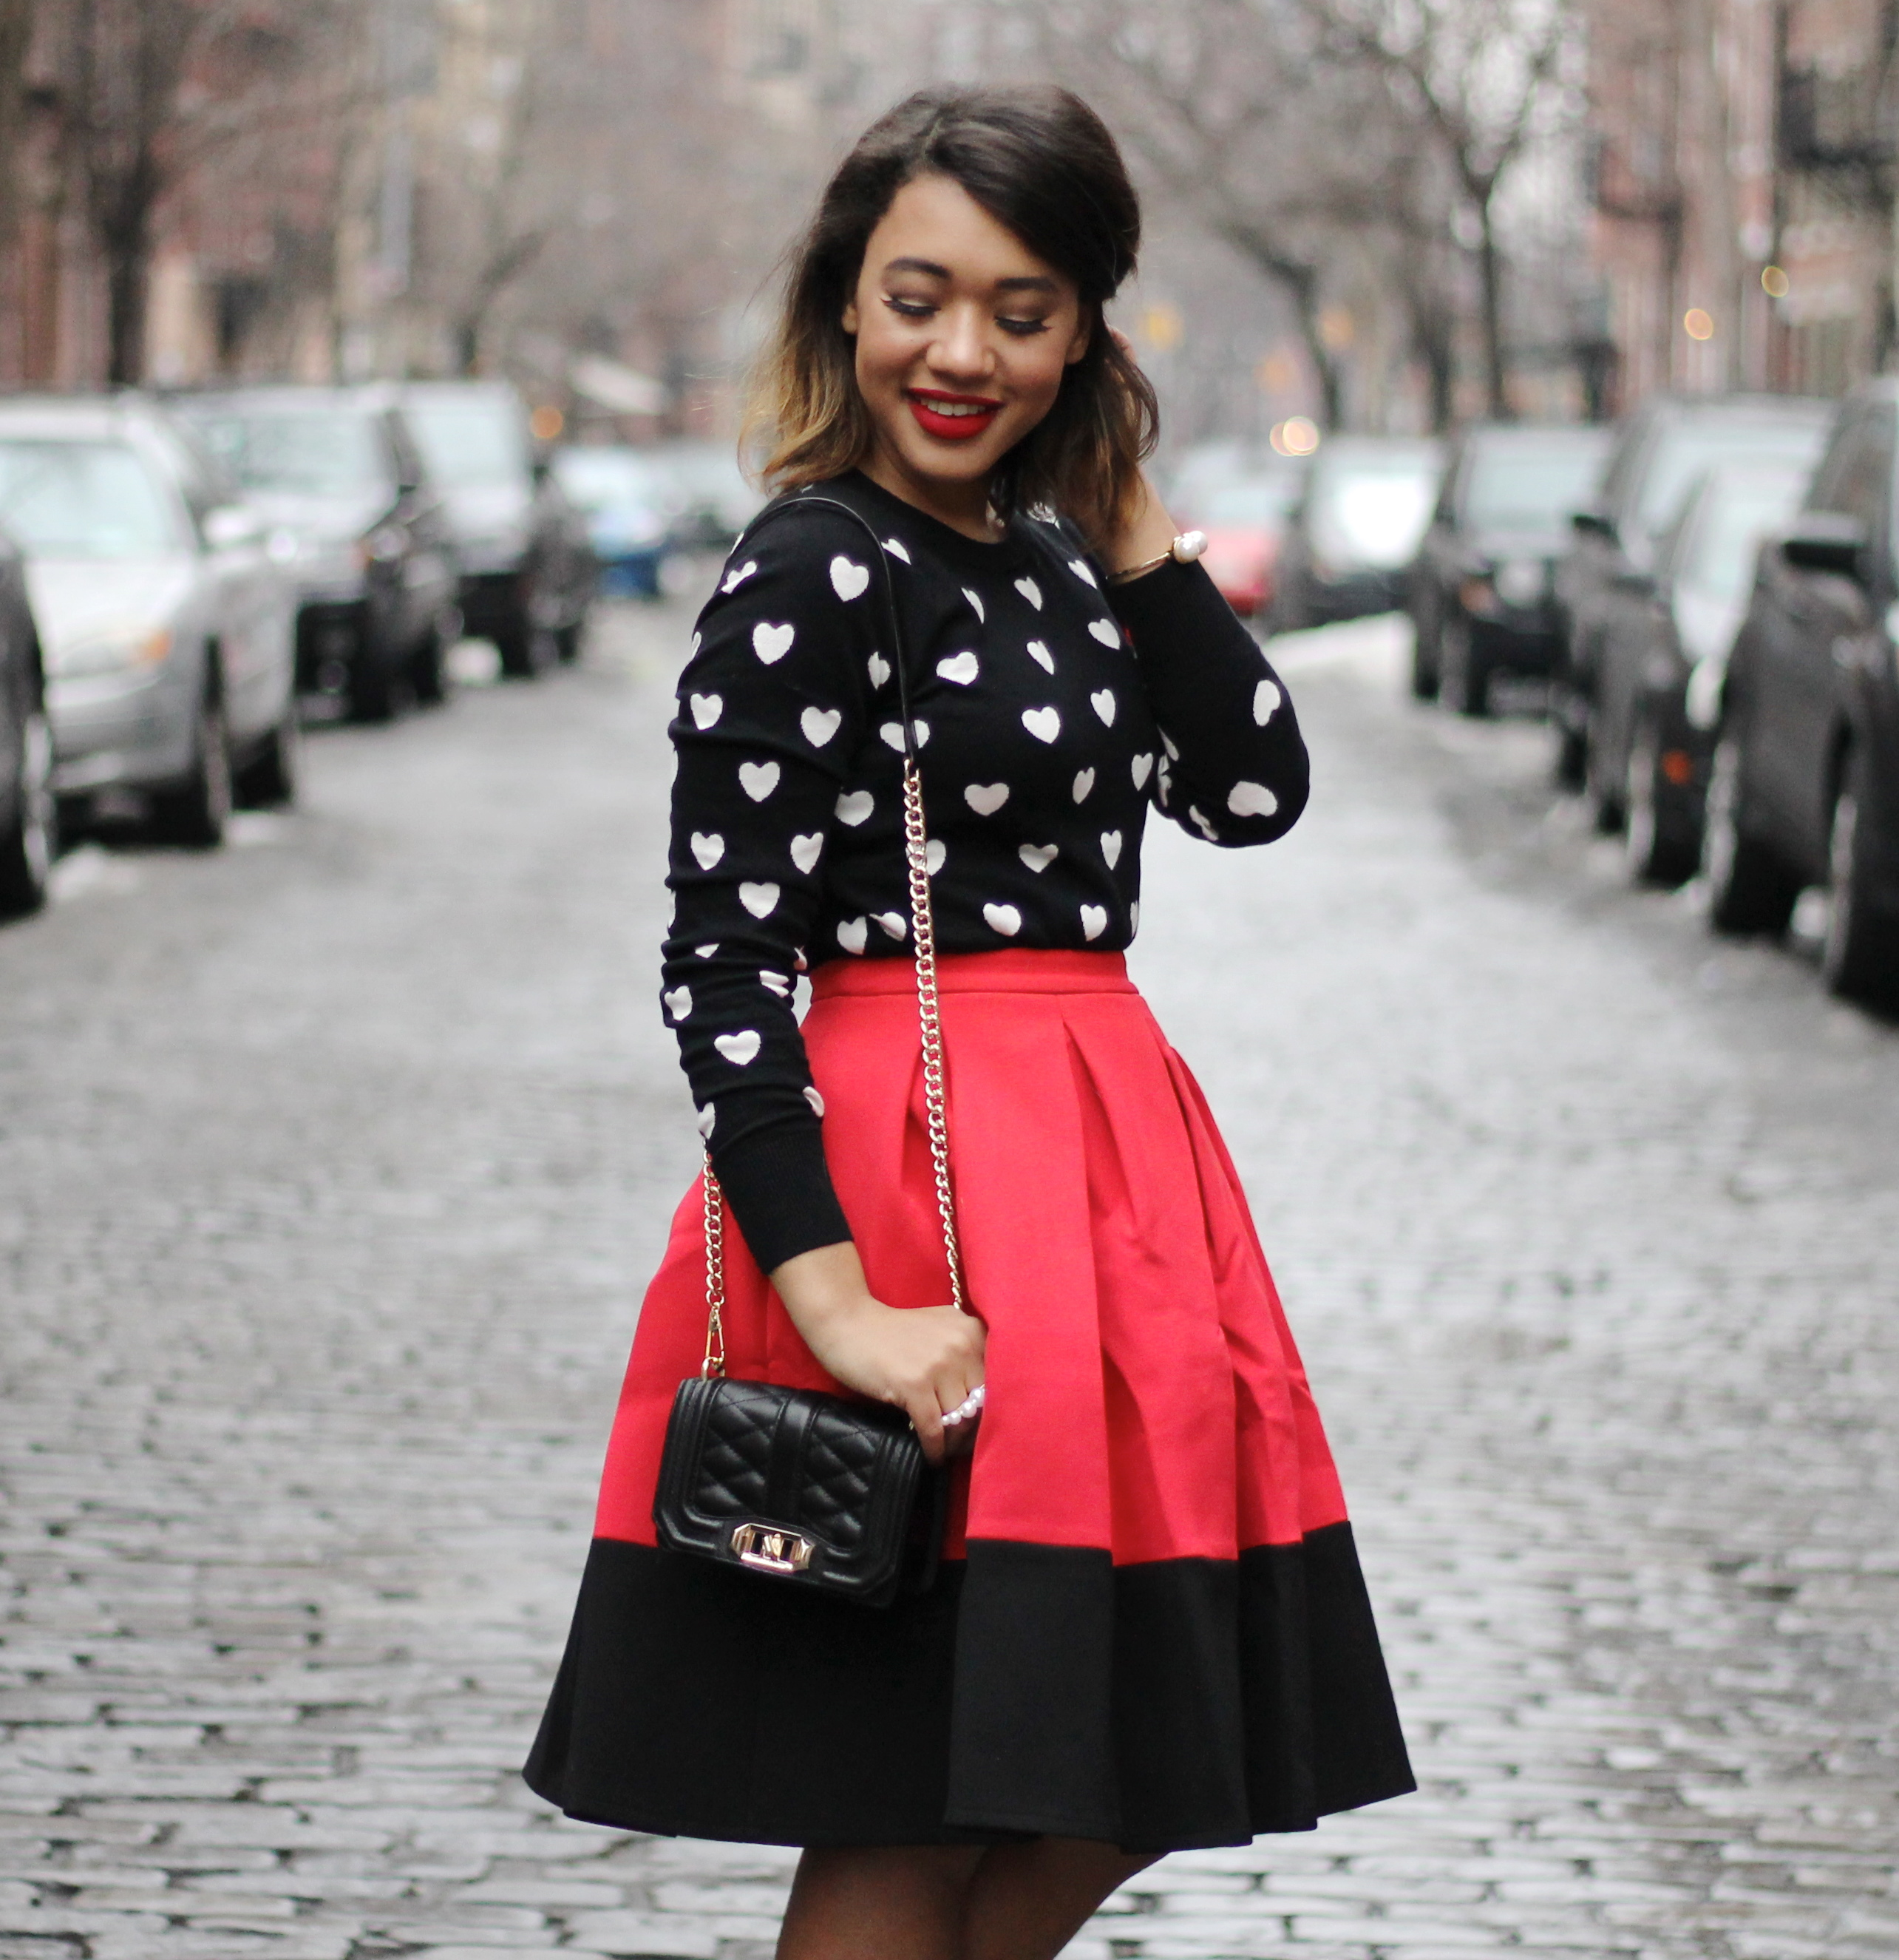 color me courtney color me courtney color me courtney blogger color me courtney colormecourtney.com colormecourtney.com colormecourtney.com colormecourtney.com courtney quinn courtney quinn courtney quinn valentines day heart sweater valentines day sweet heart valentines day heart sweater look valentines day heart sweater heart sweater black heart sweater red midi skirt red midi skirt red midi skirt black fashion blogger fashion blogger new york fashion blogger new york fashion blogger new york fashion blogger nyc fashion blogger new york fashion blogger nyfw fashion blogger black fashion blogger midi skirt new york fashion blogger best fashion blogger new york fashion blogger